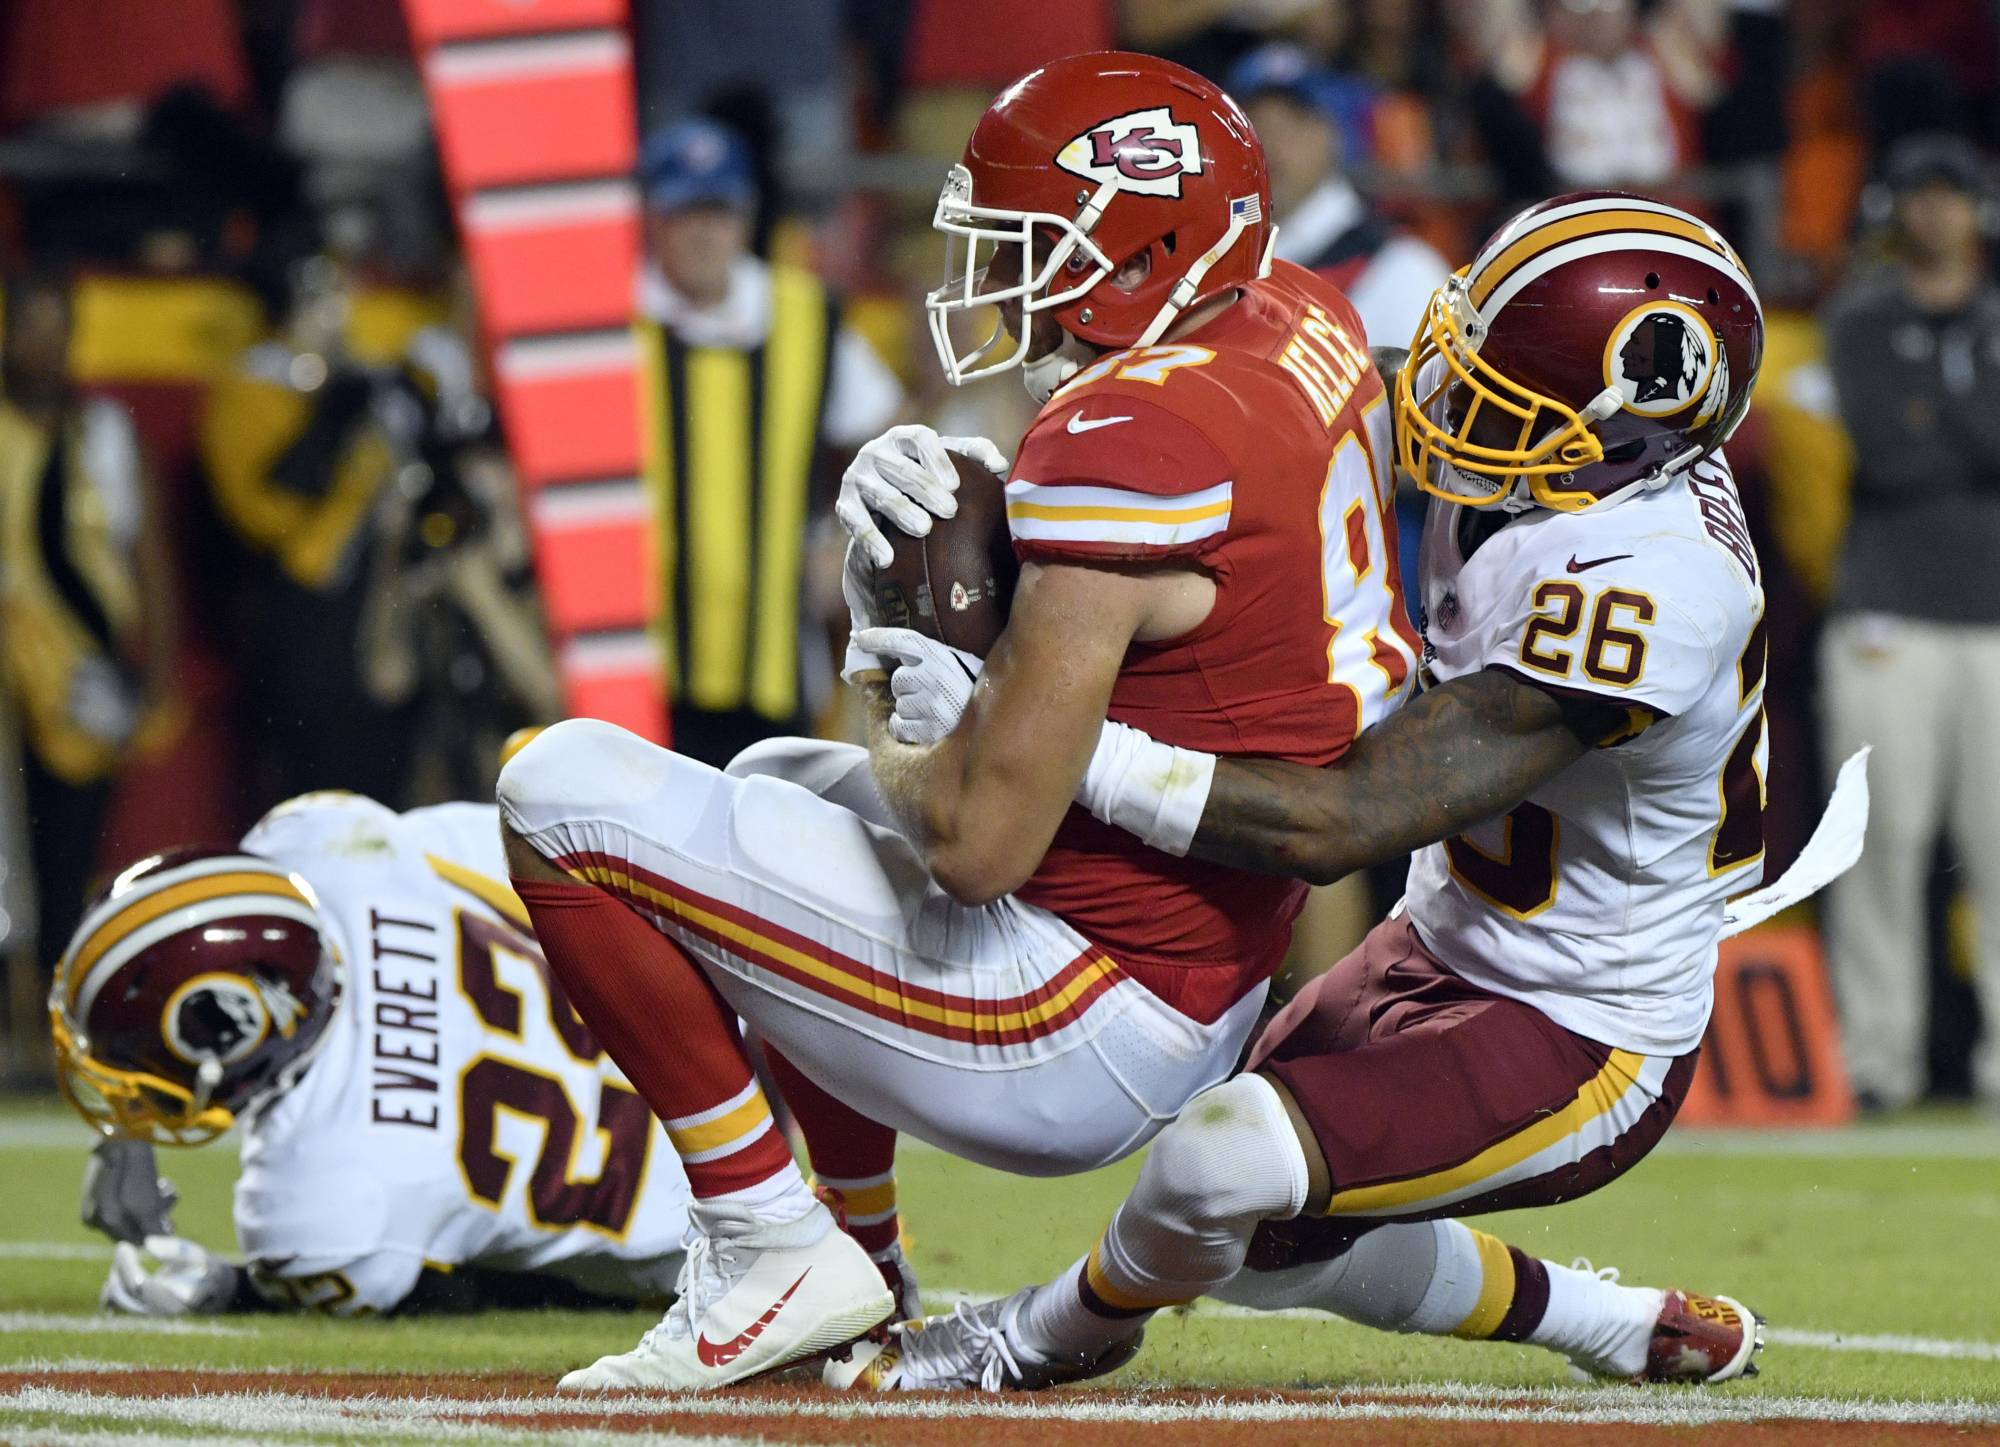 latimes.com Butker s field goals send Chiefs to 29-20 win over Redskins 3691bc0ff